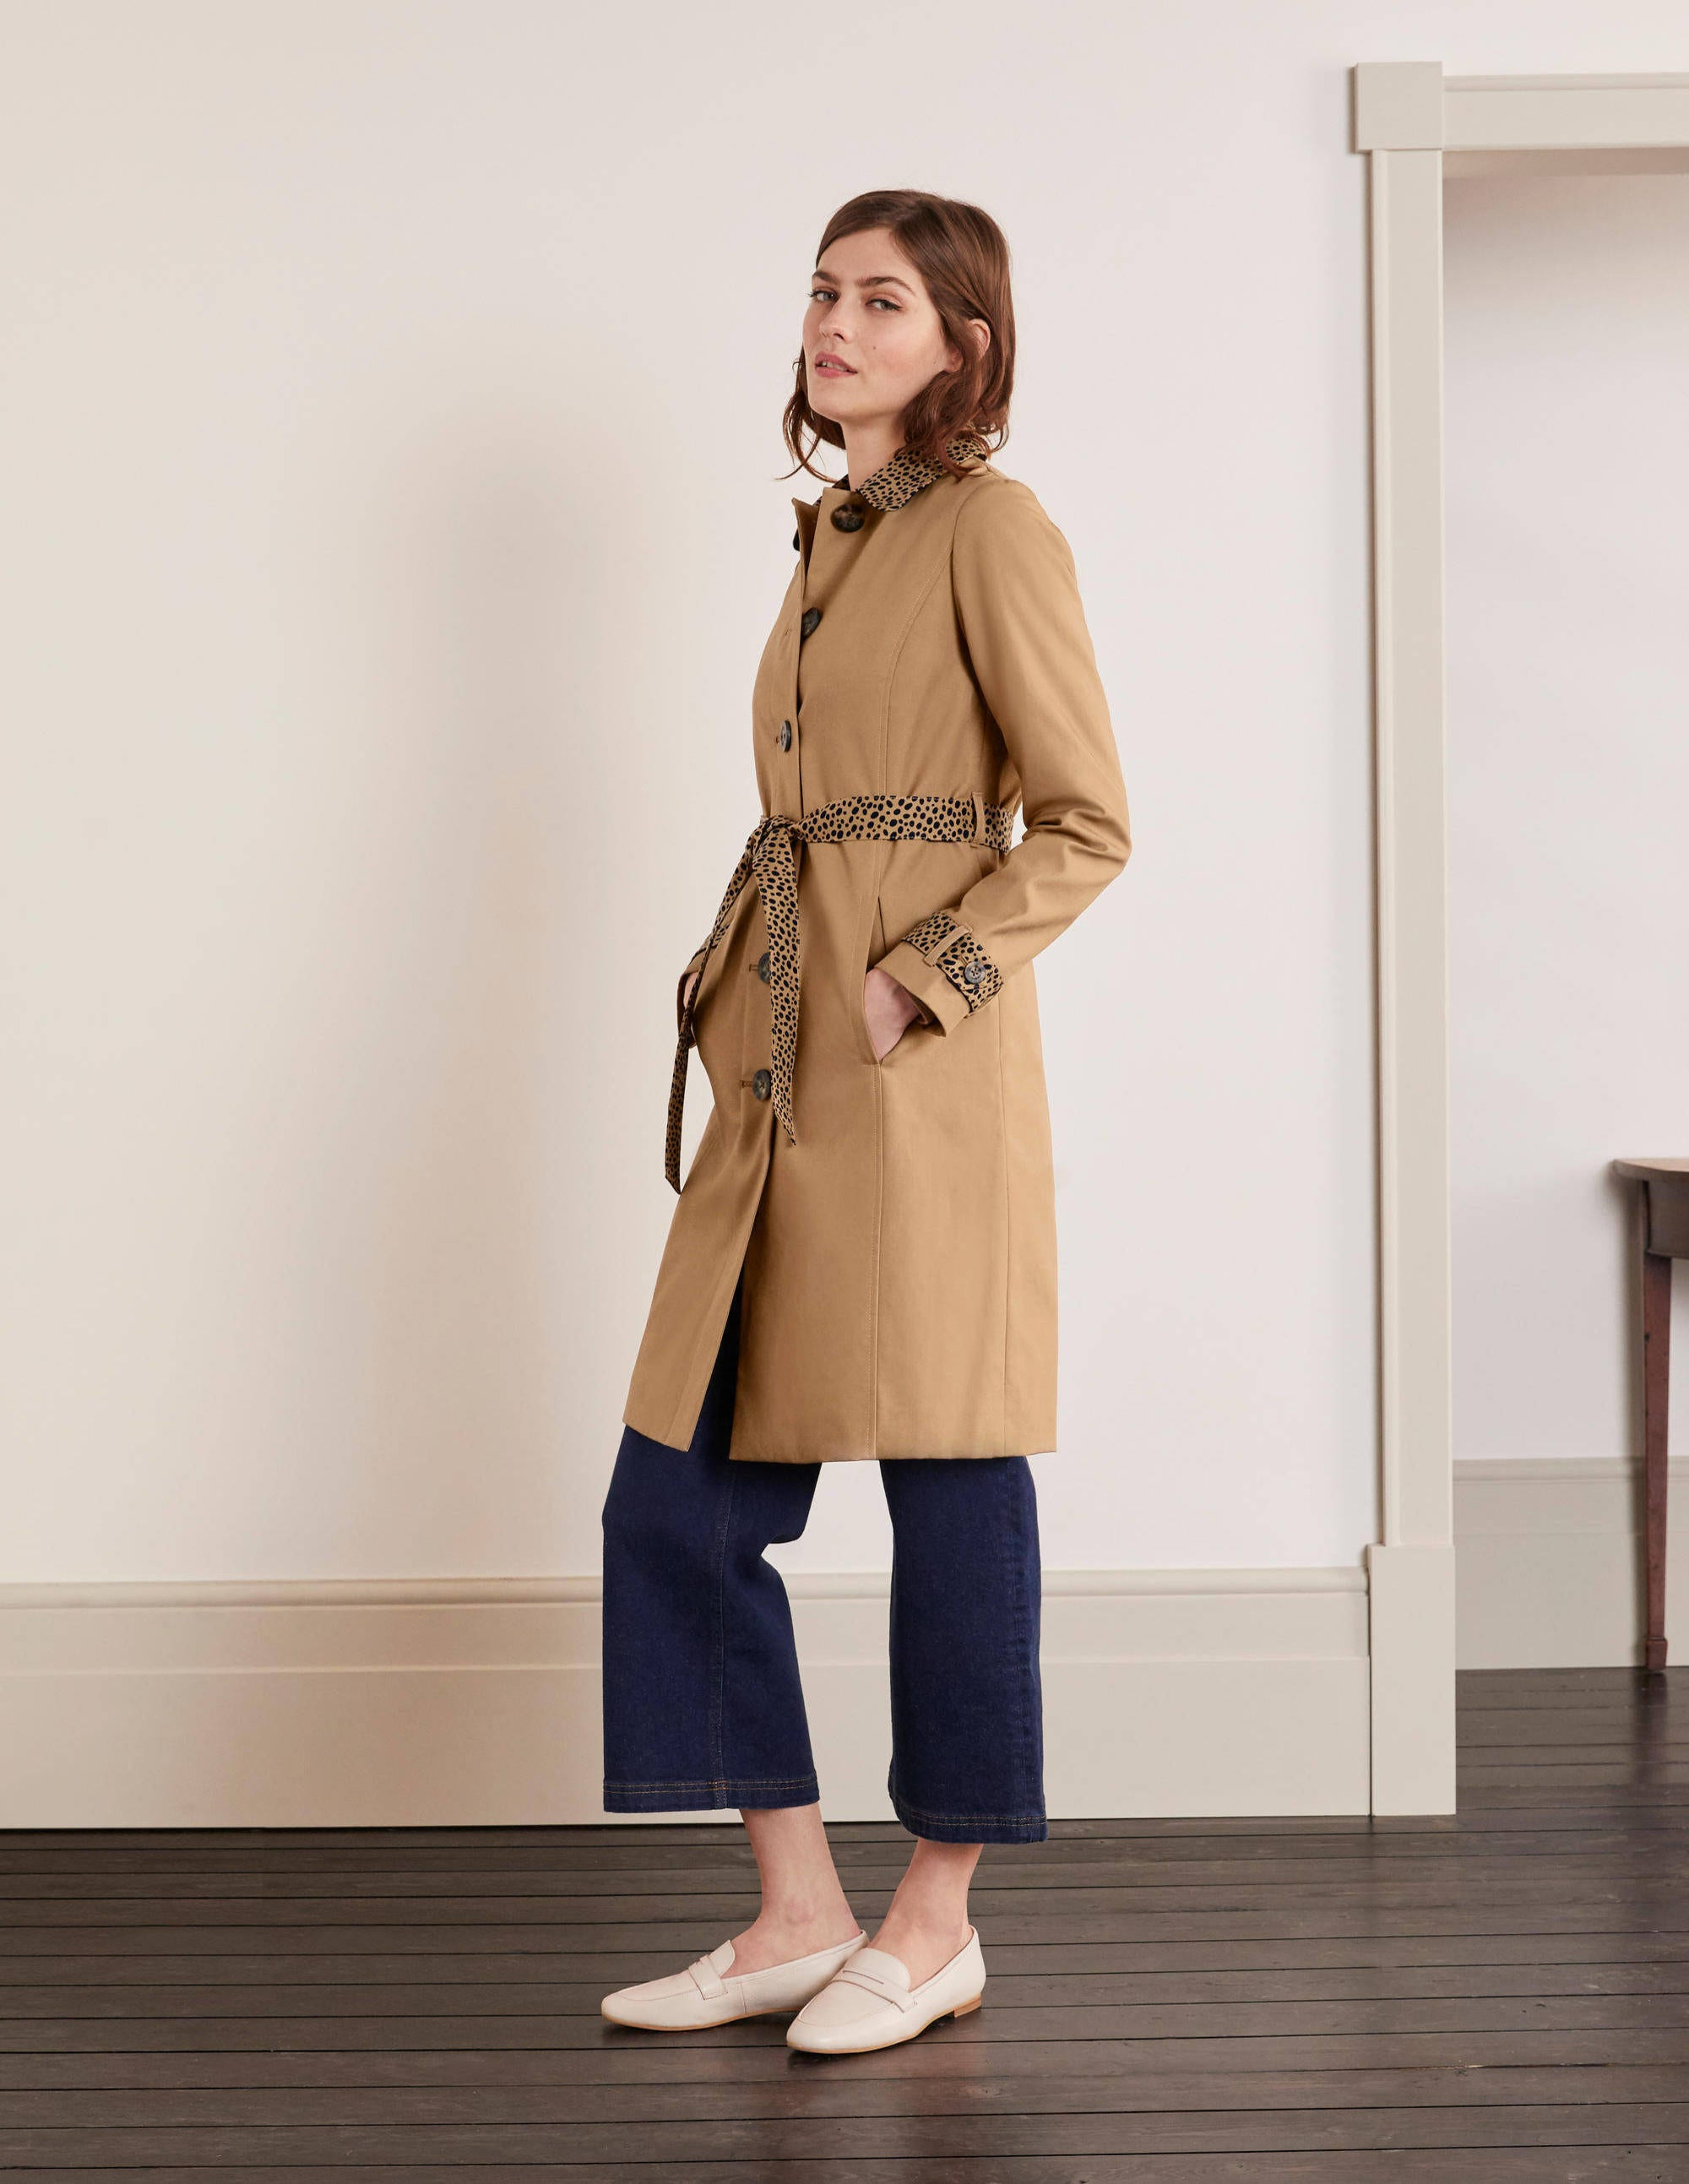 Details about Gallery Petite Trench Coat Women Size 6 Brown Lining